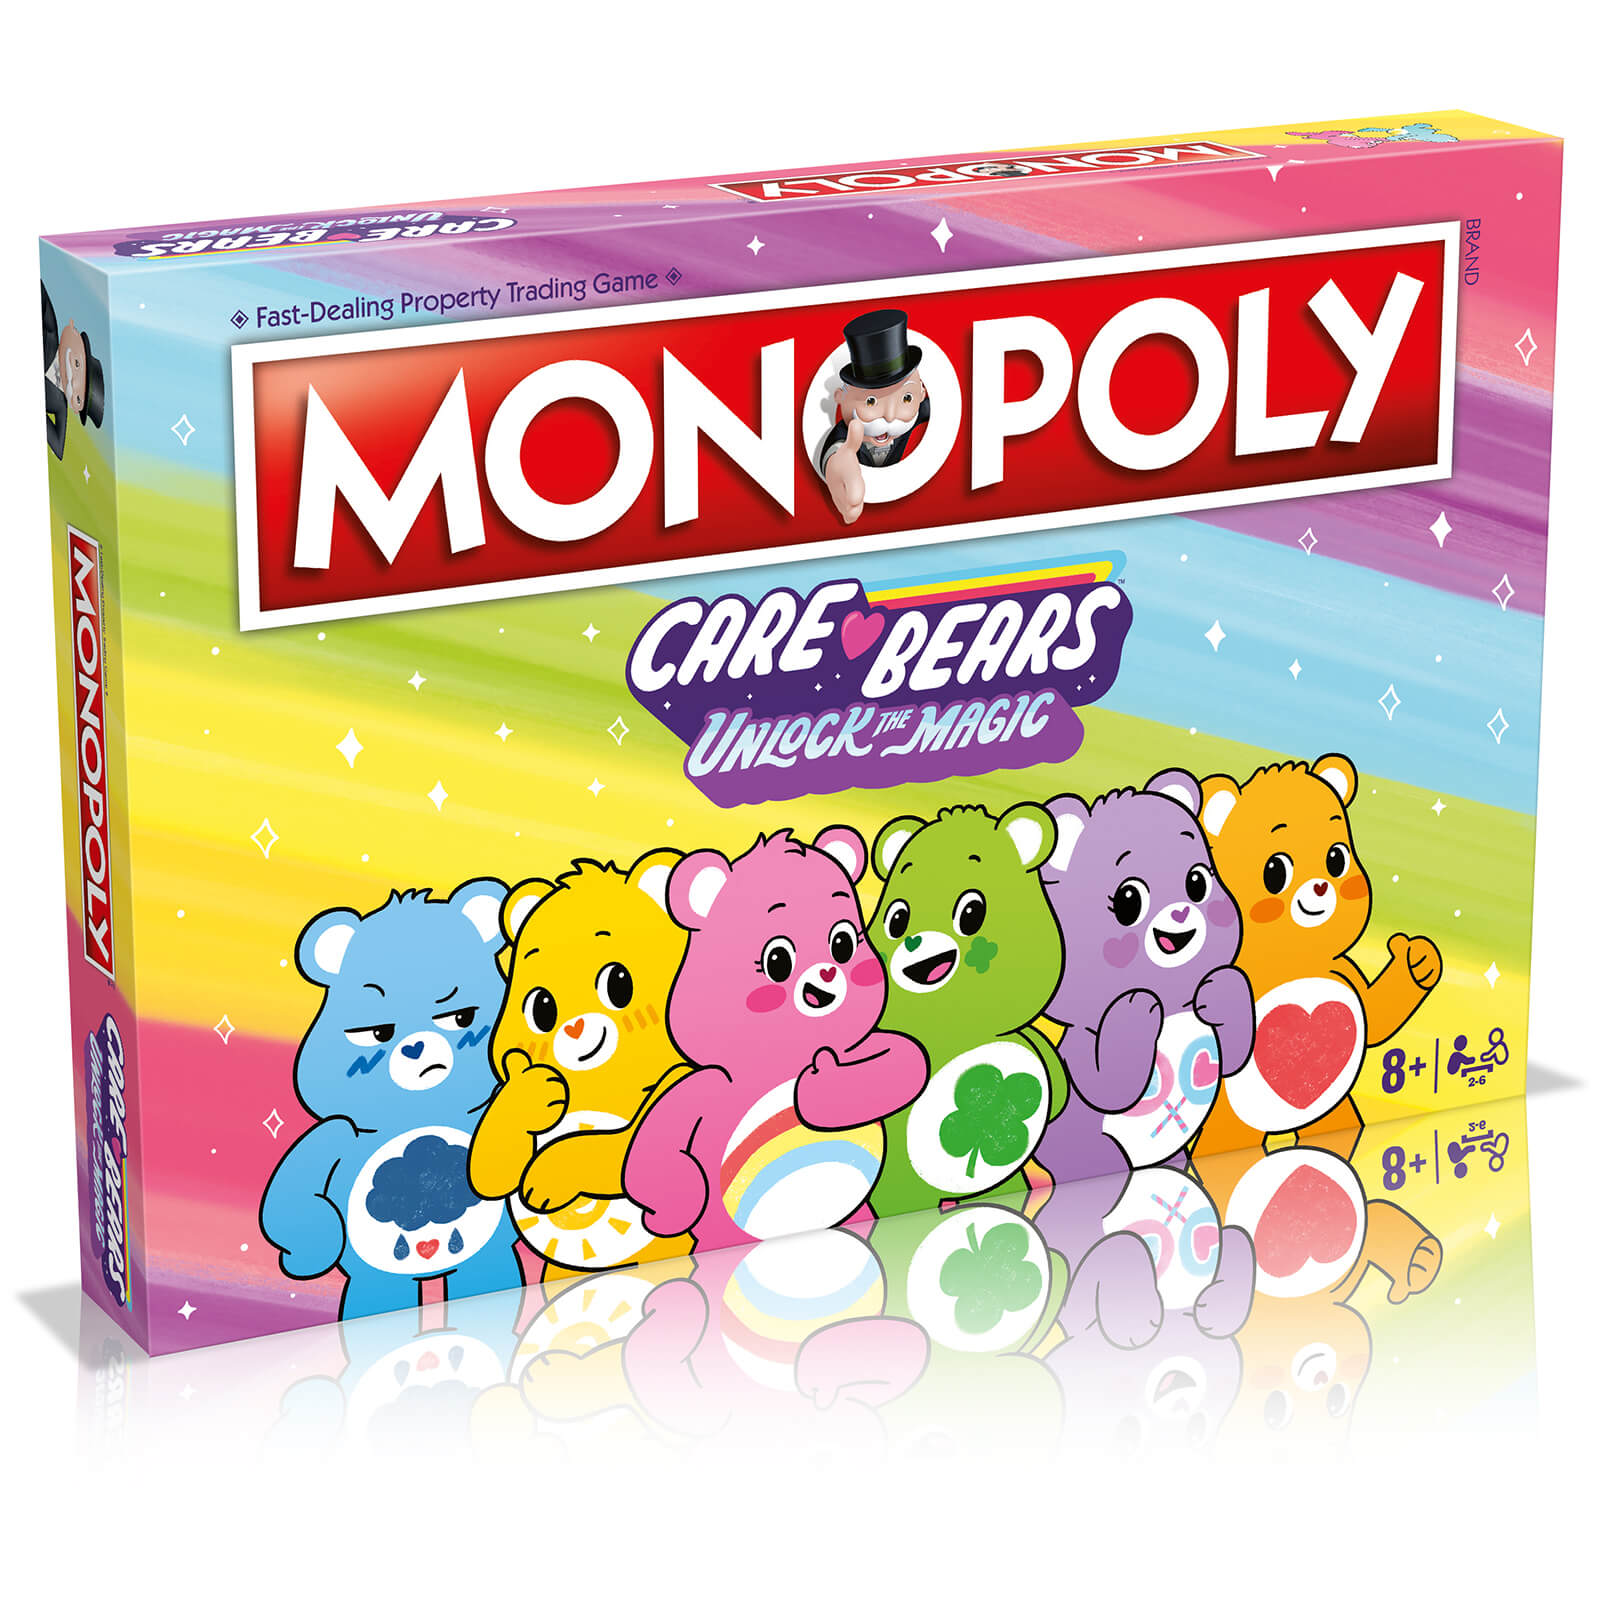 Image of Care Bears Monopoly Board Game